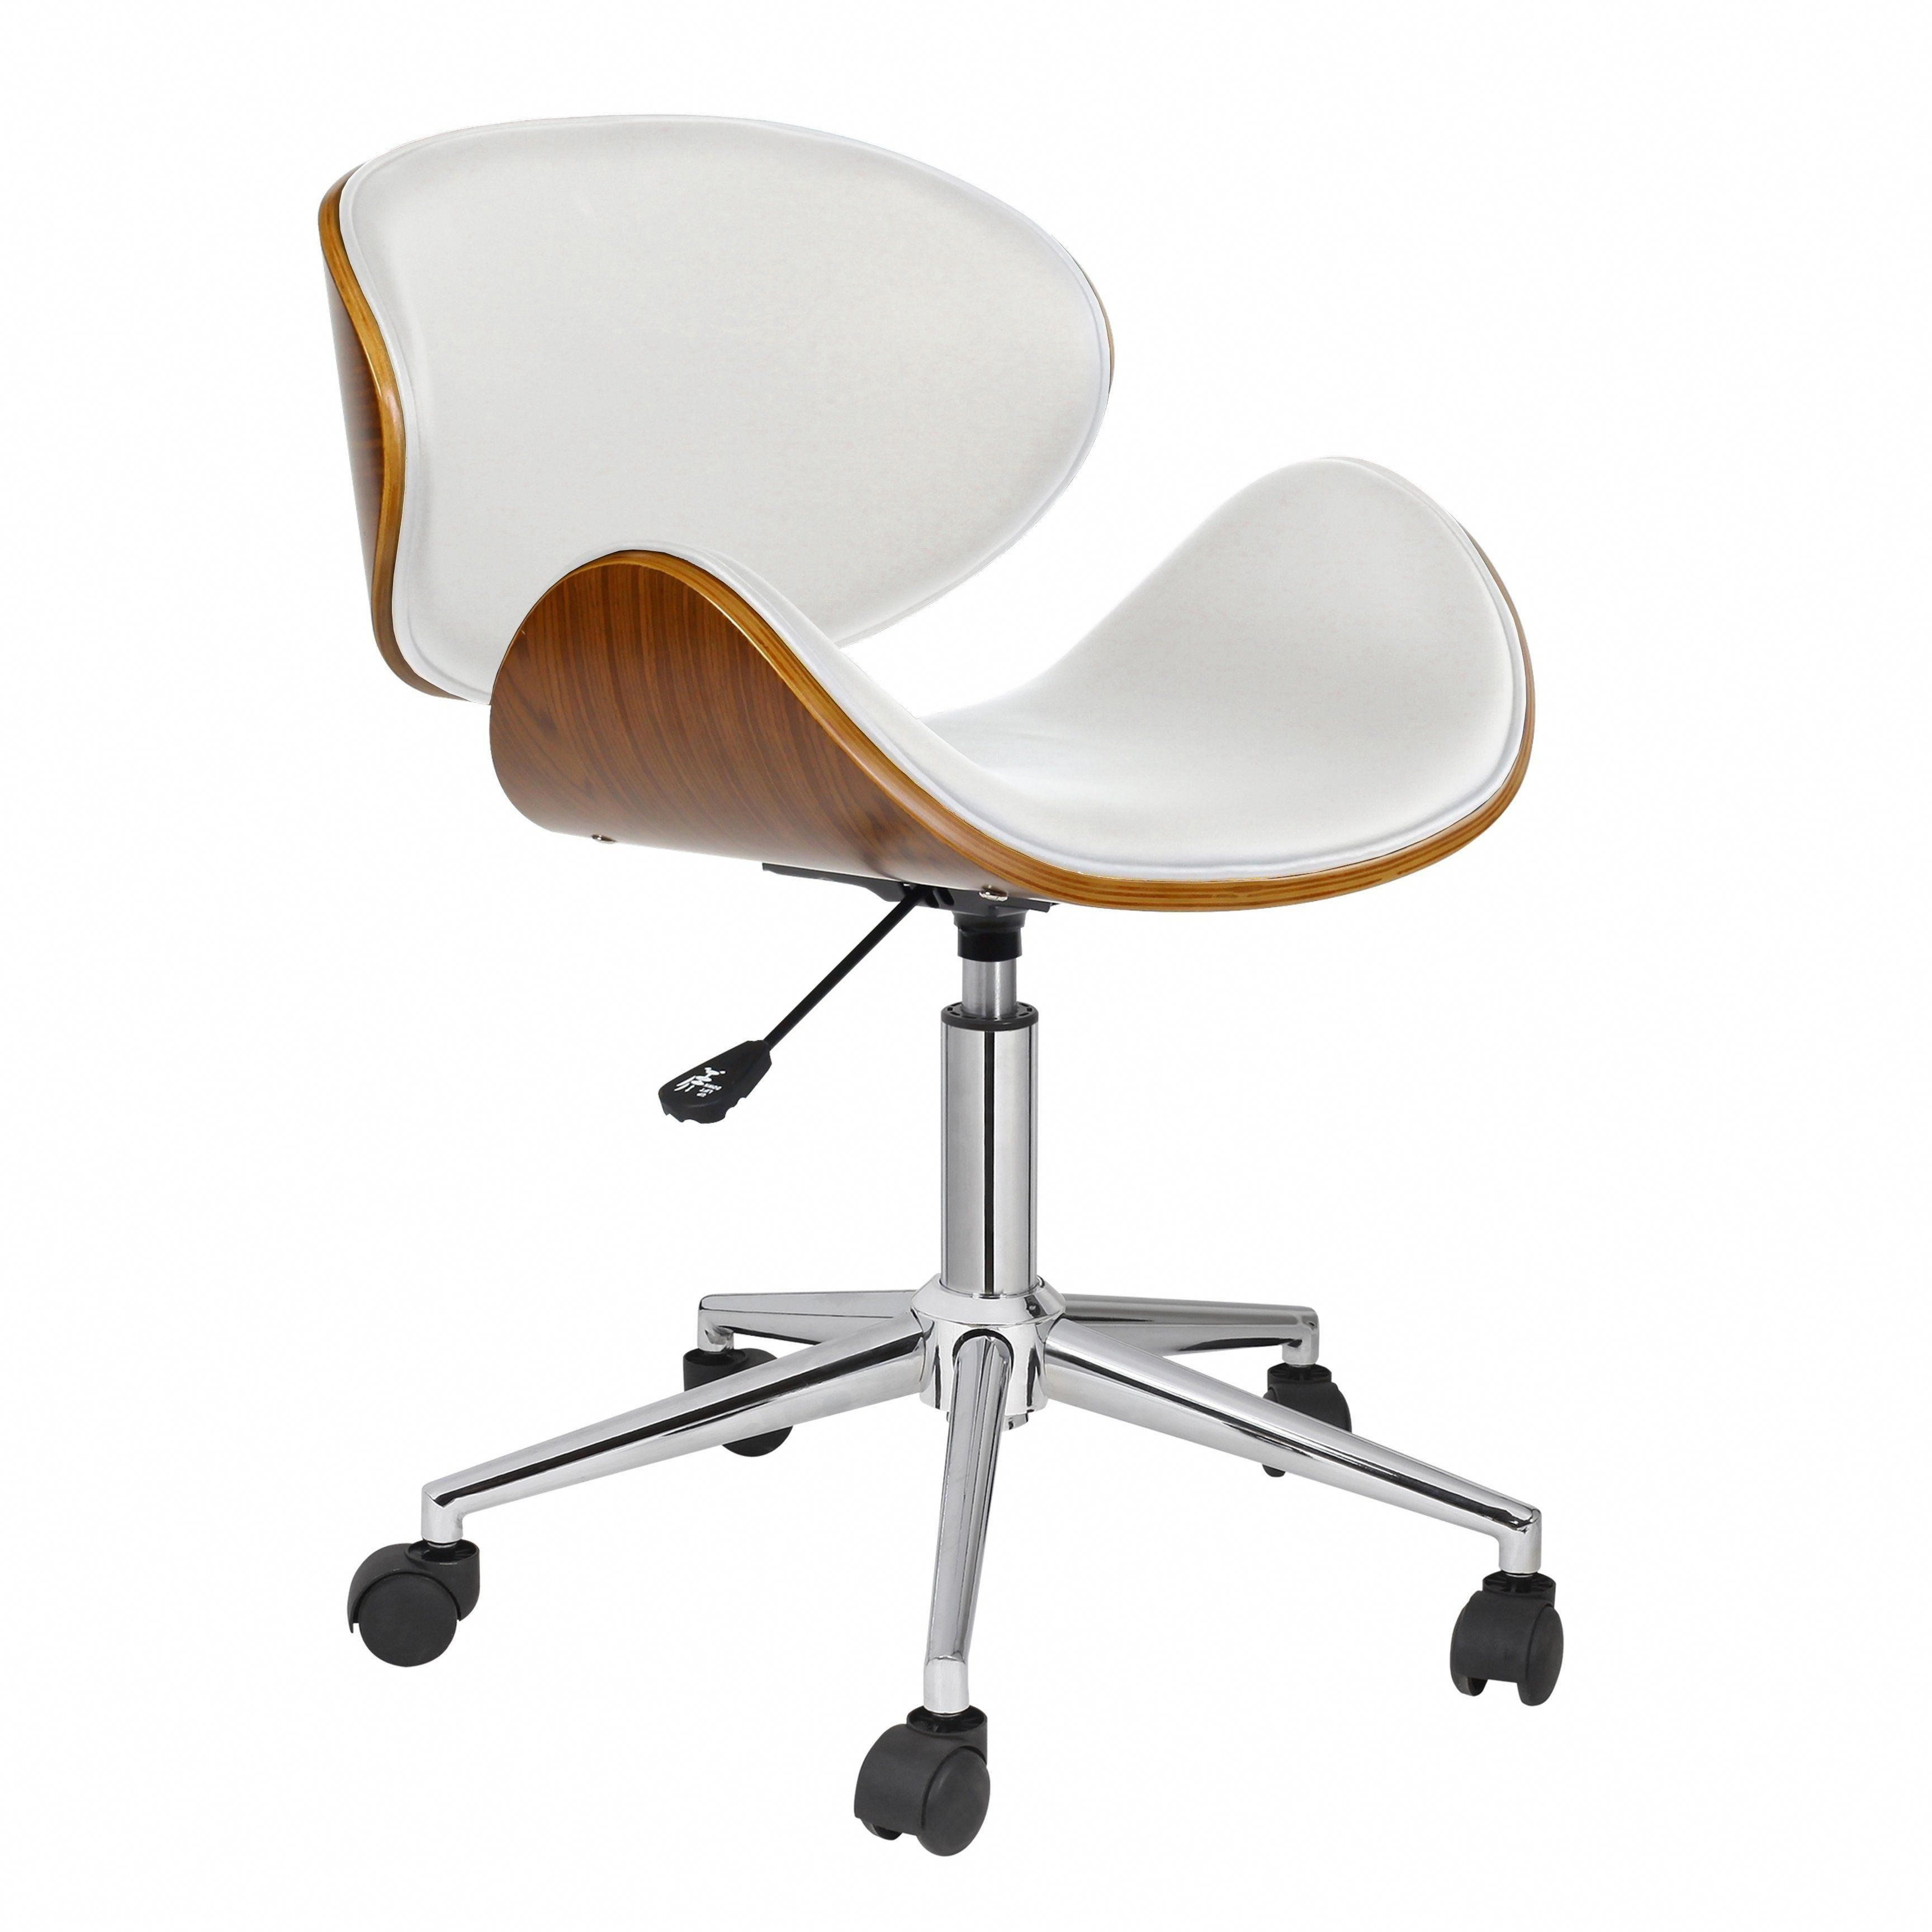 Oversized Living Room Chair Homeofficechairs In 2020 Home Office Chairs Modern Office Chair White Office Chair #office #chair #for #living #room